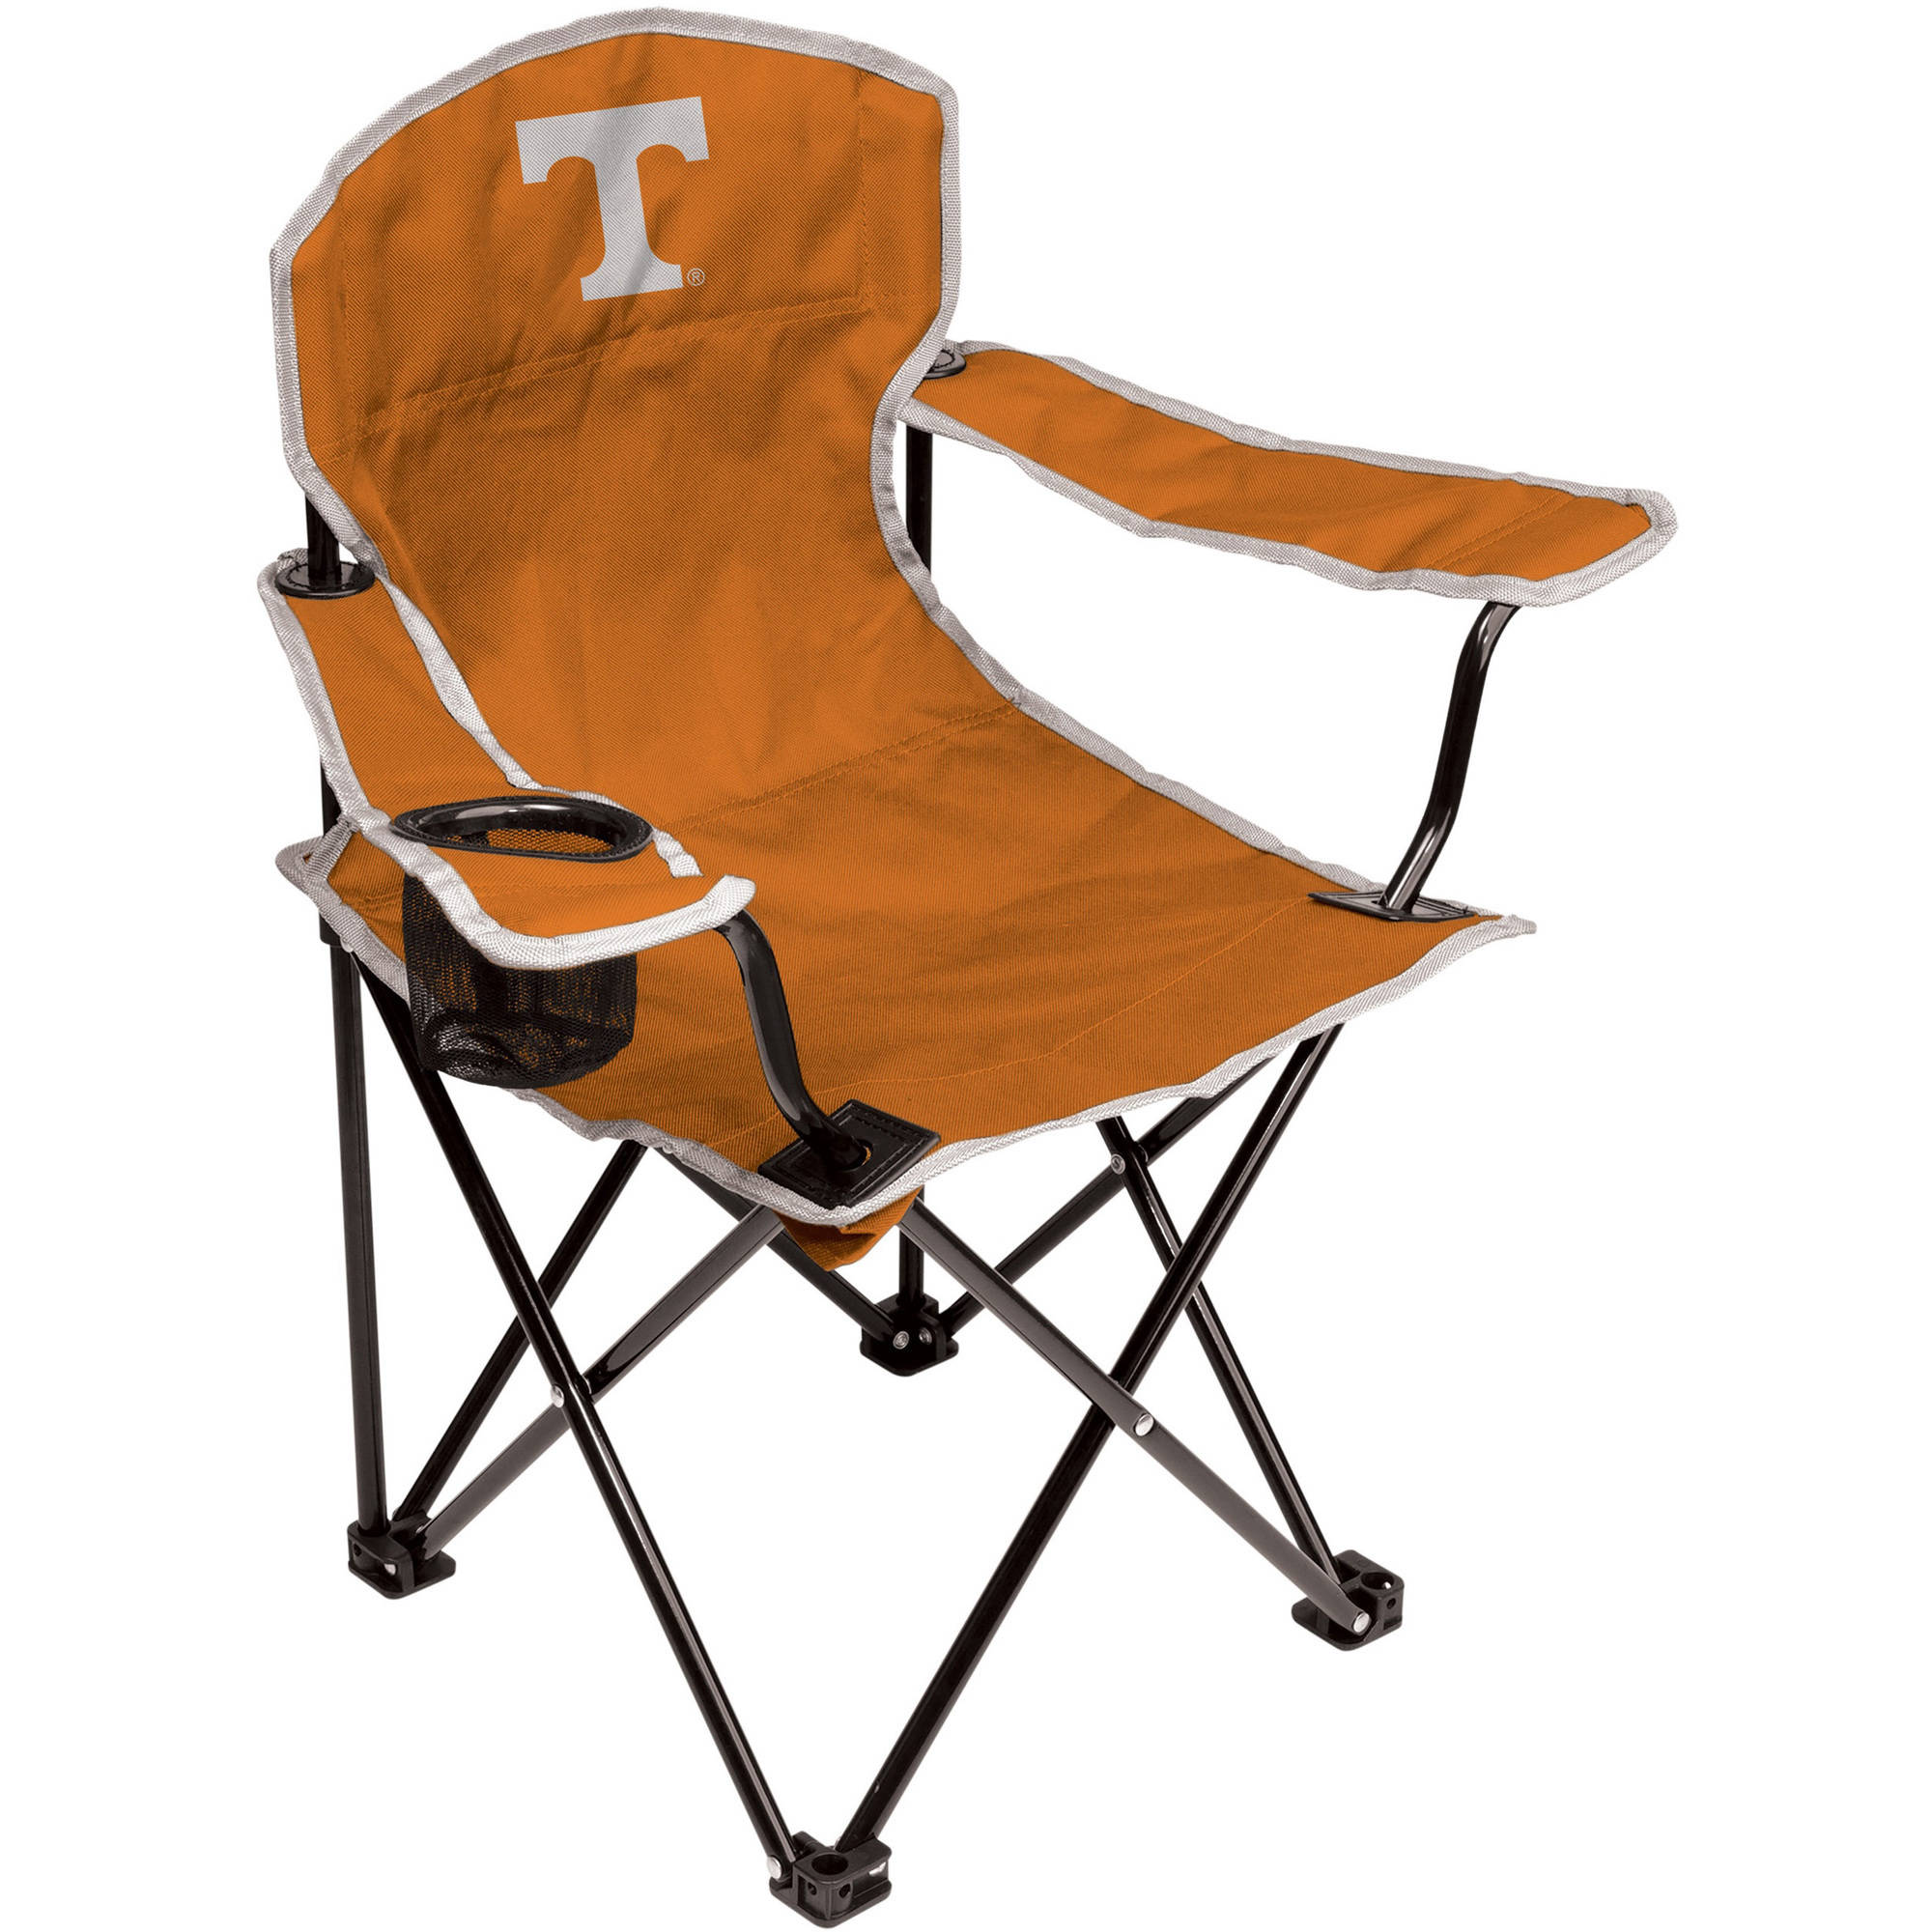 NCAA Tennessee Volunteers Youth Size Tailgate Chair from Coleman by Rawlings